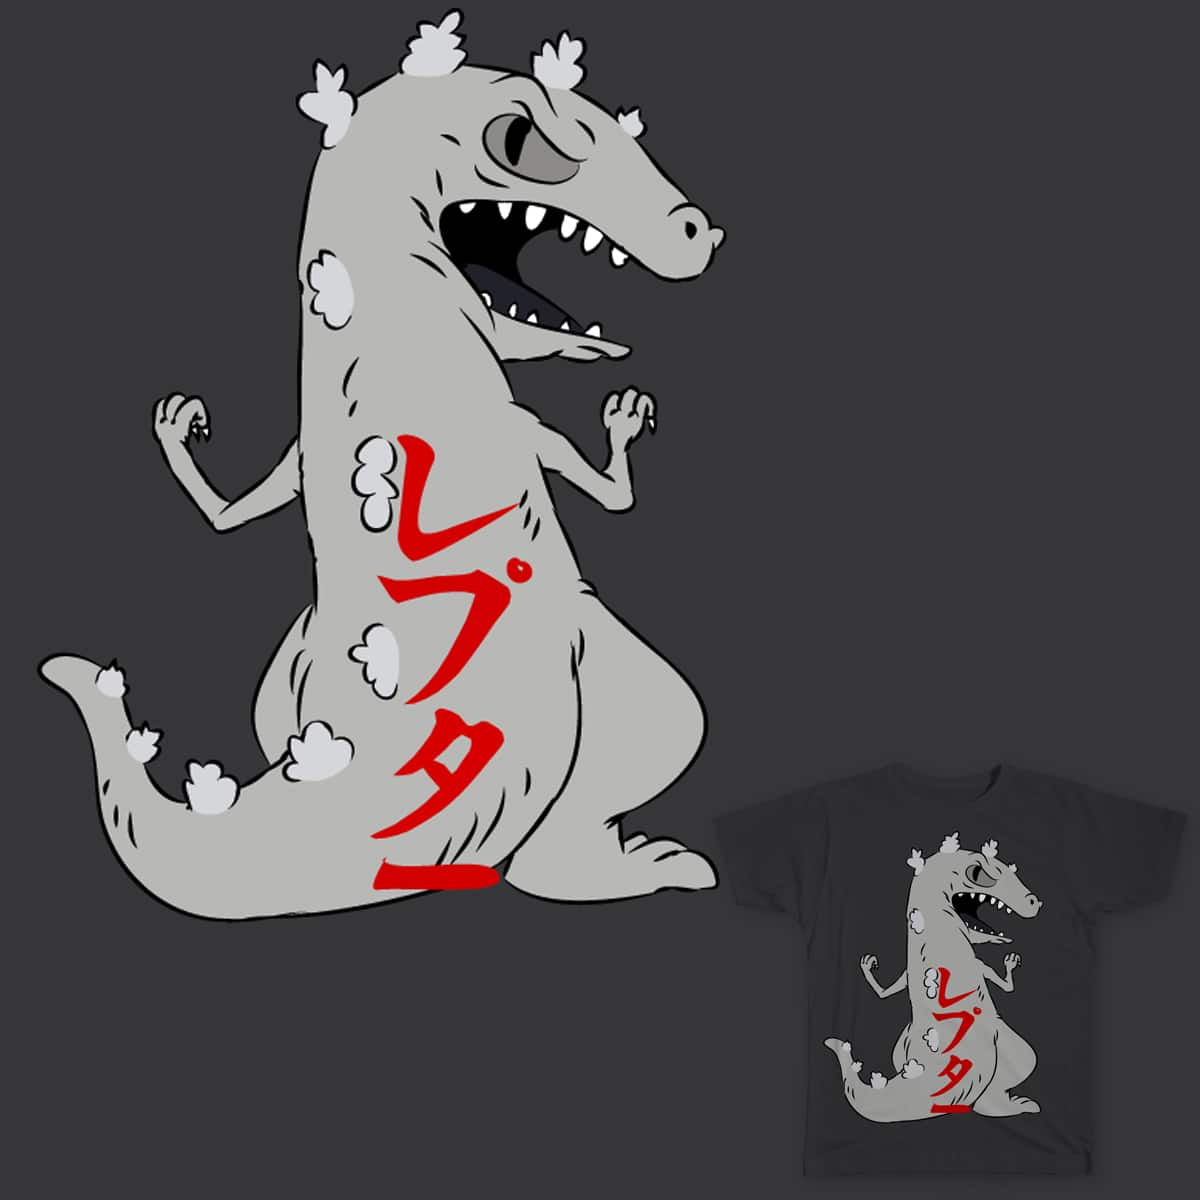 Reptar is King!! by OhRawd on Threadless